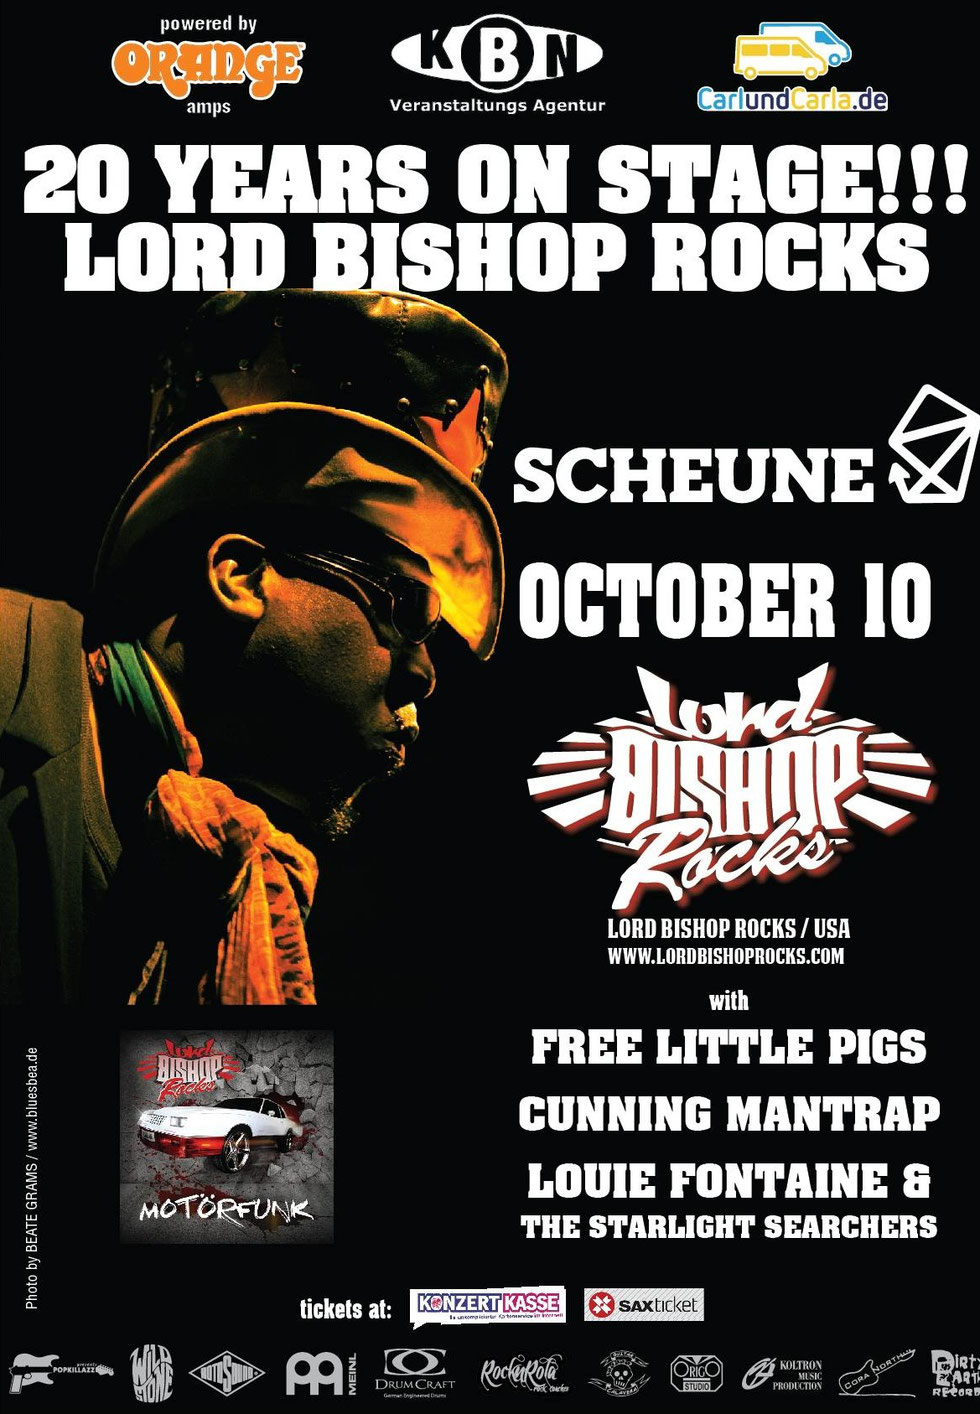 Lord Bishop Rocks